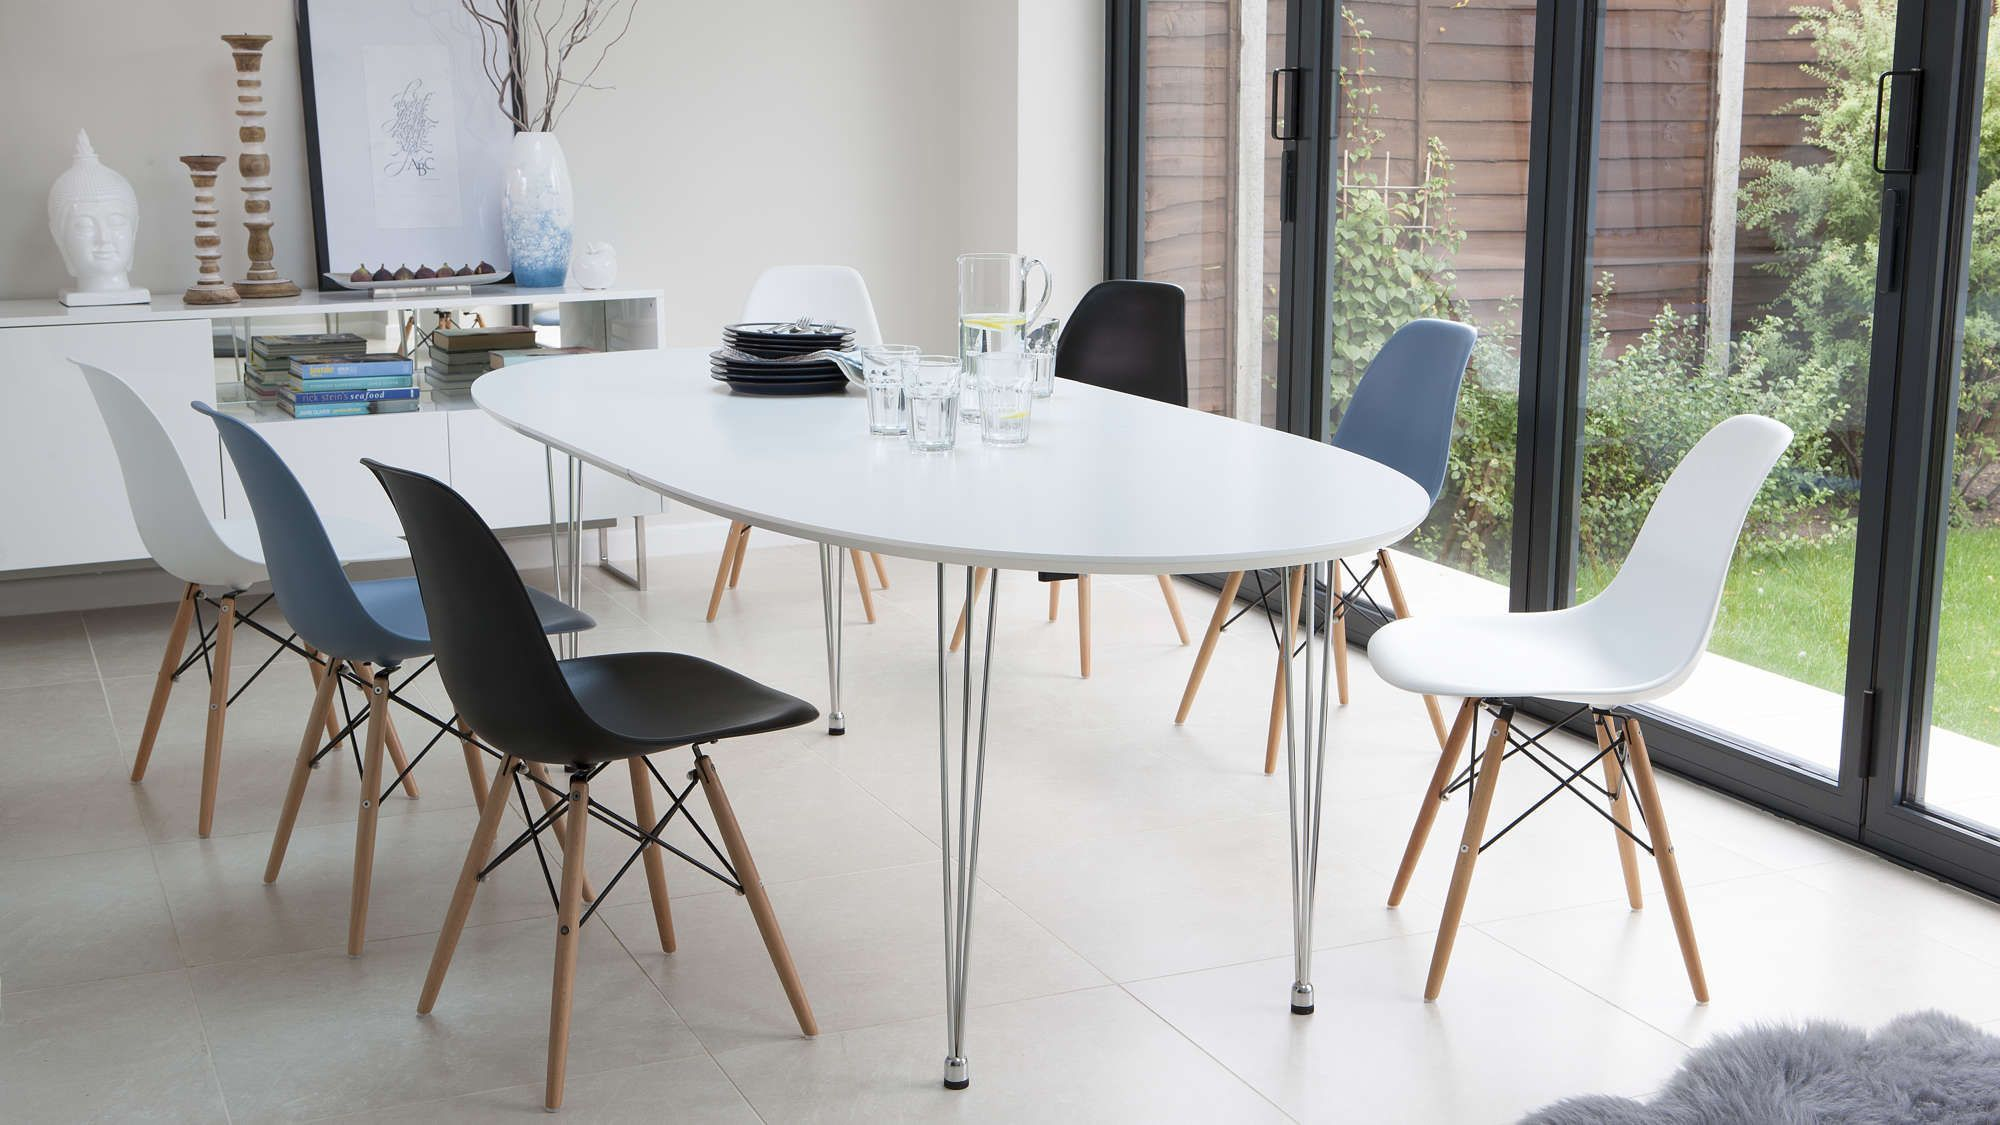 Contemporary Dining Tables Extendable For Modern Homes Oval